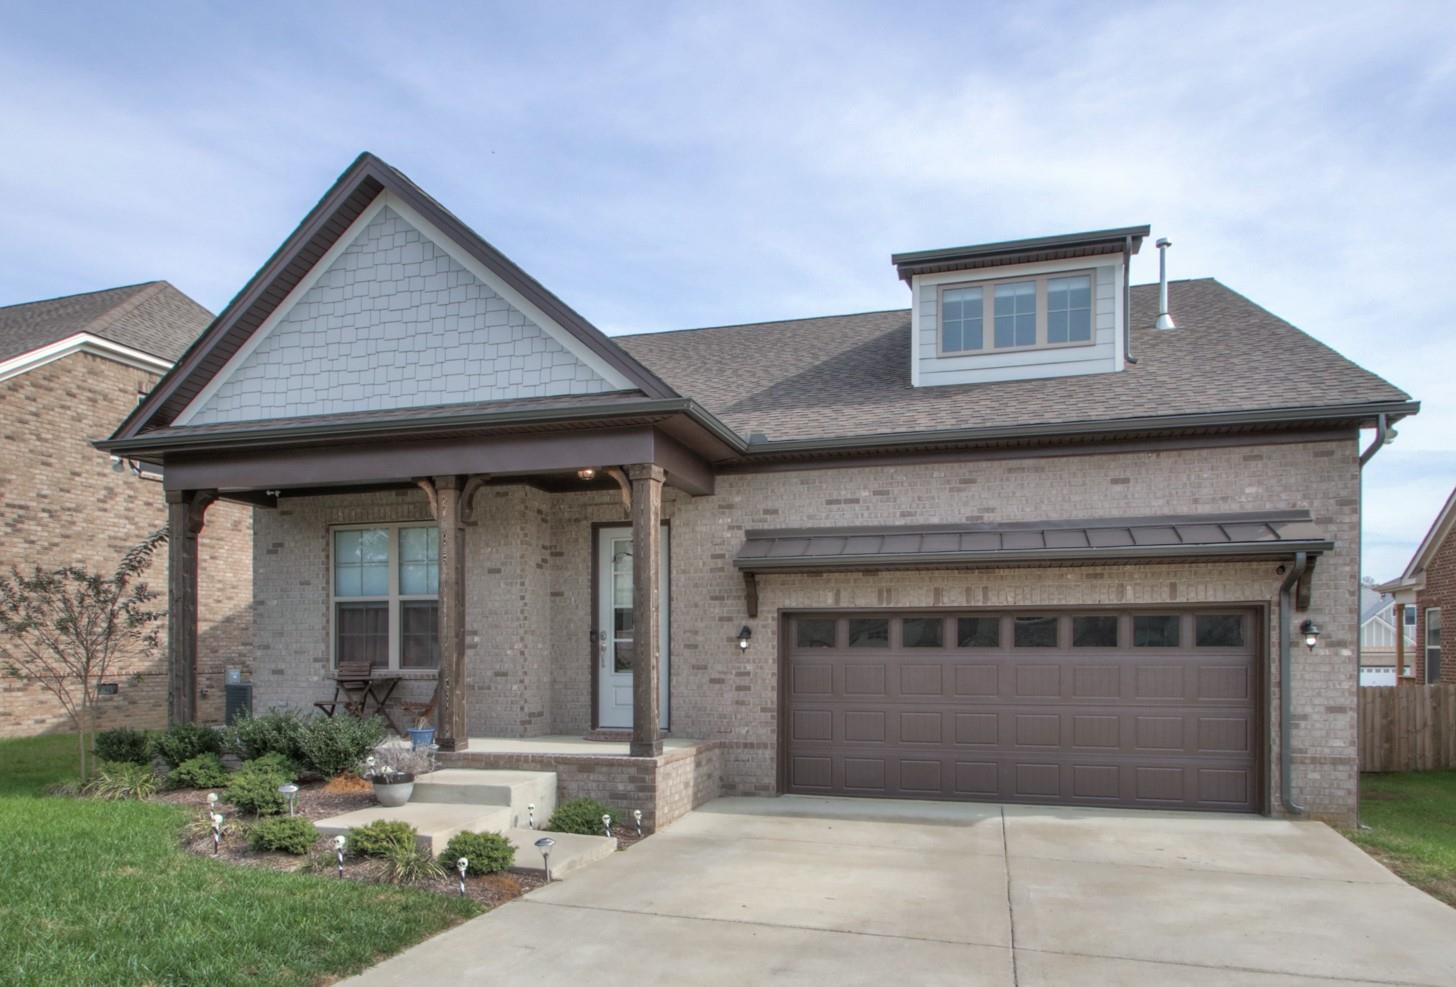 16 Hope Ct, Mount Juliet, Tennessee